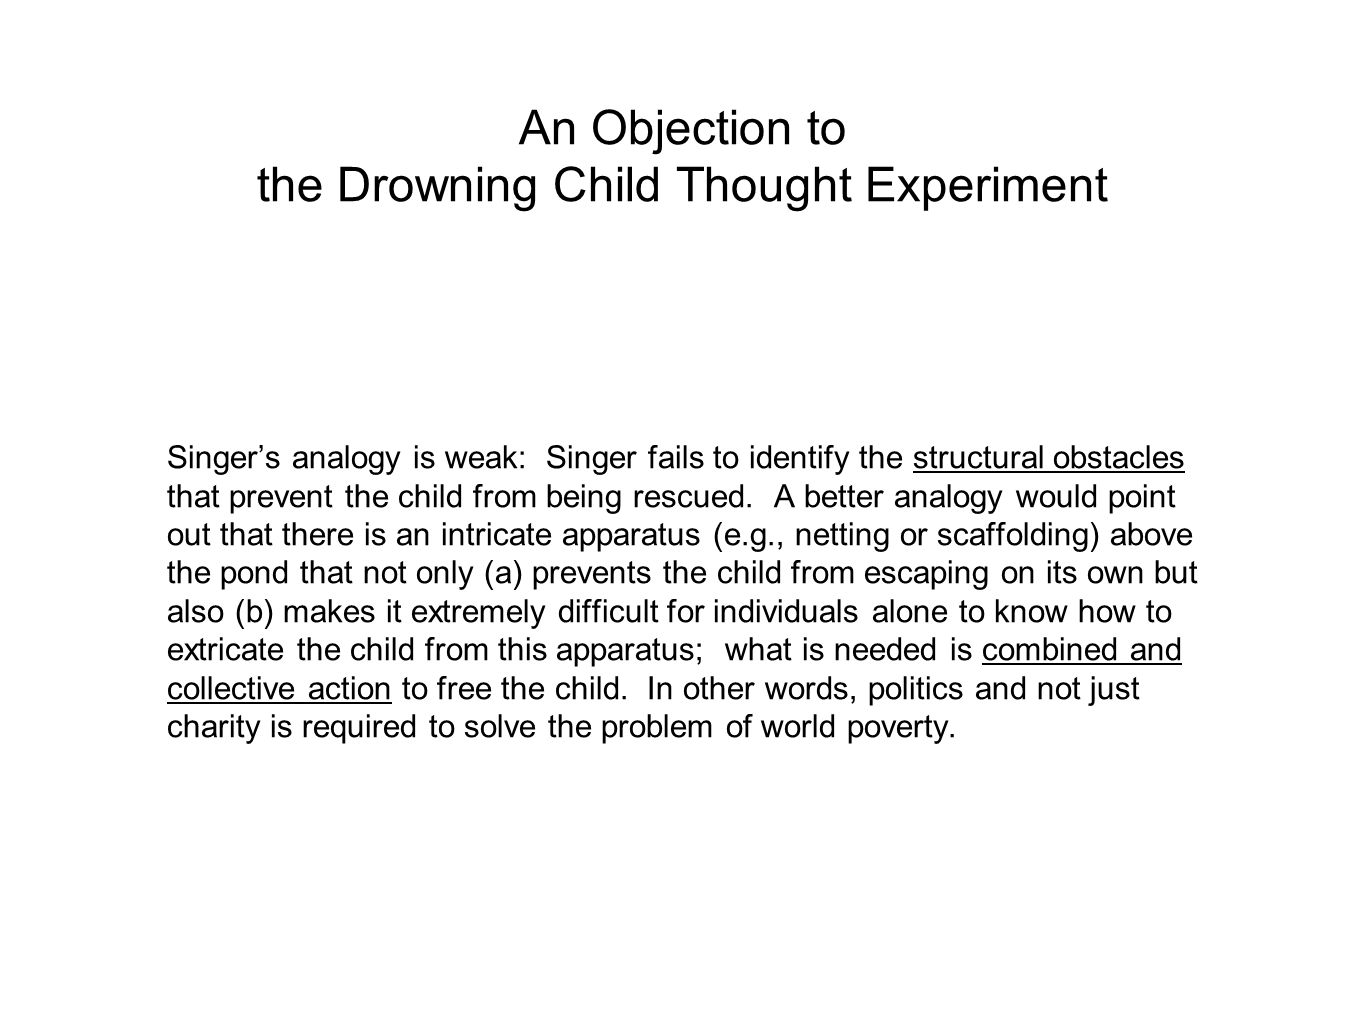 An Objection to the Drowning Child Thought Experiment Singer's analogy is weak: Singer fails to identify the structural obstacles that prevent the chi